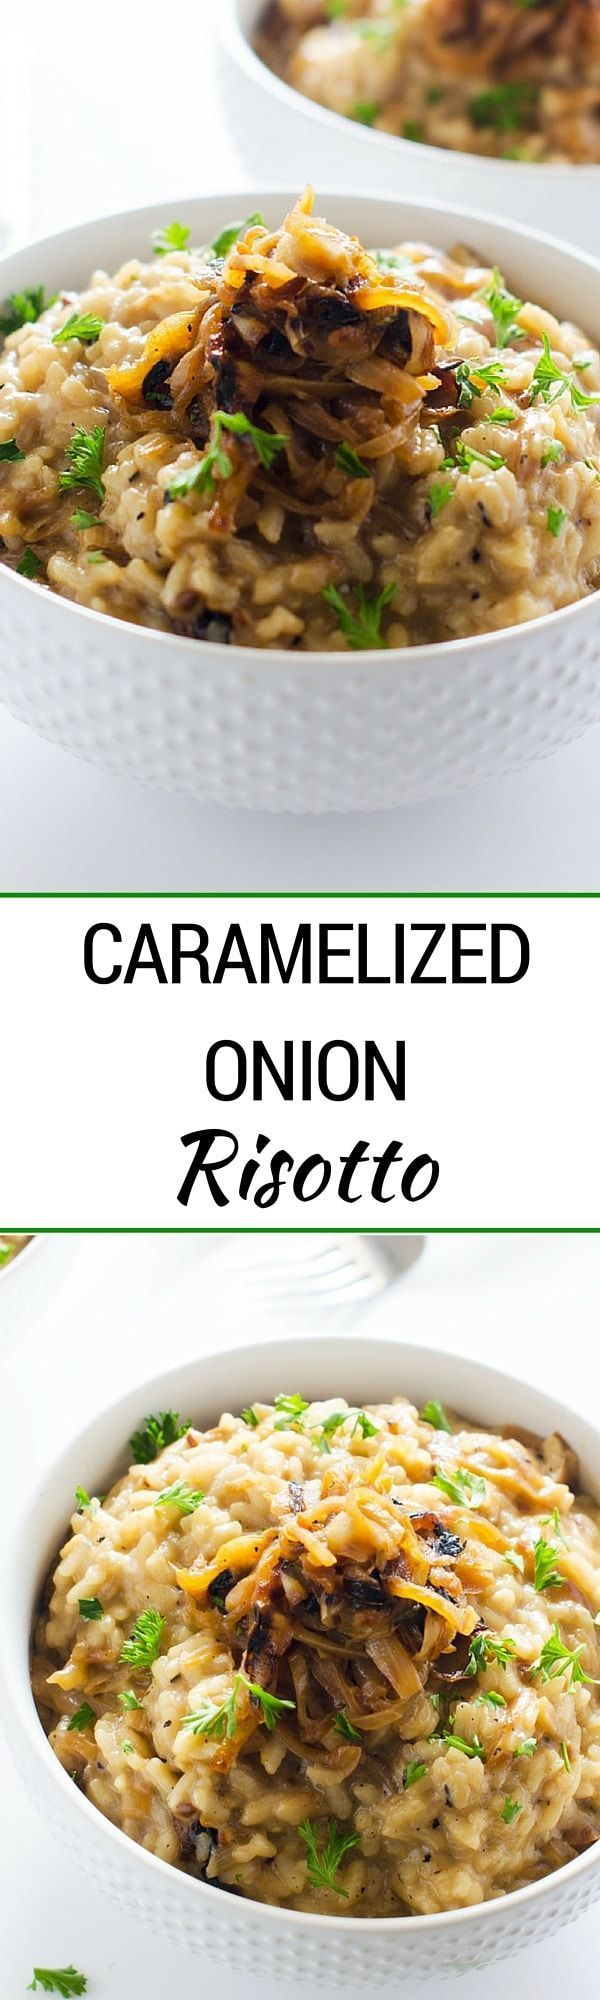 Caramelized Onion Risotto With caramelized onions goat cheese and Parmesan cheese this Caramelized Onion Risotto will blow you away It is an elegant vegetarian main dish...